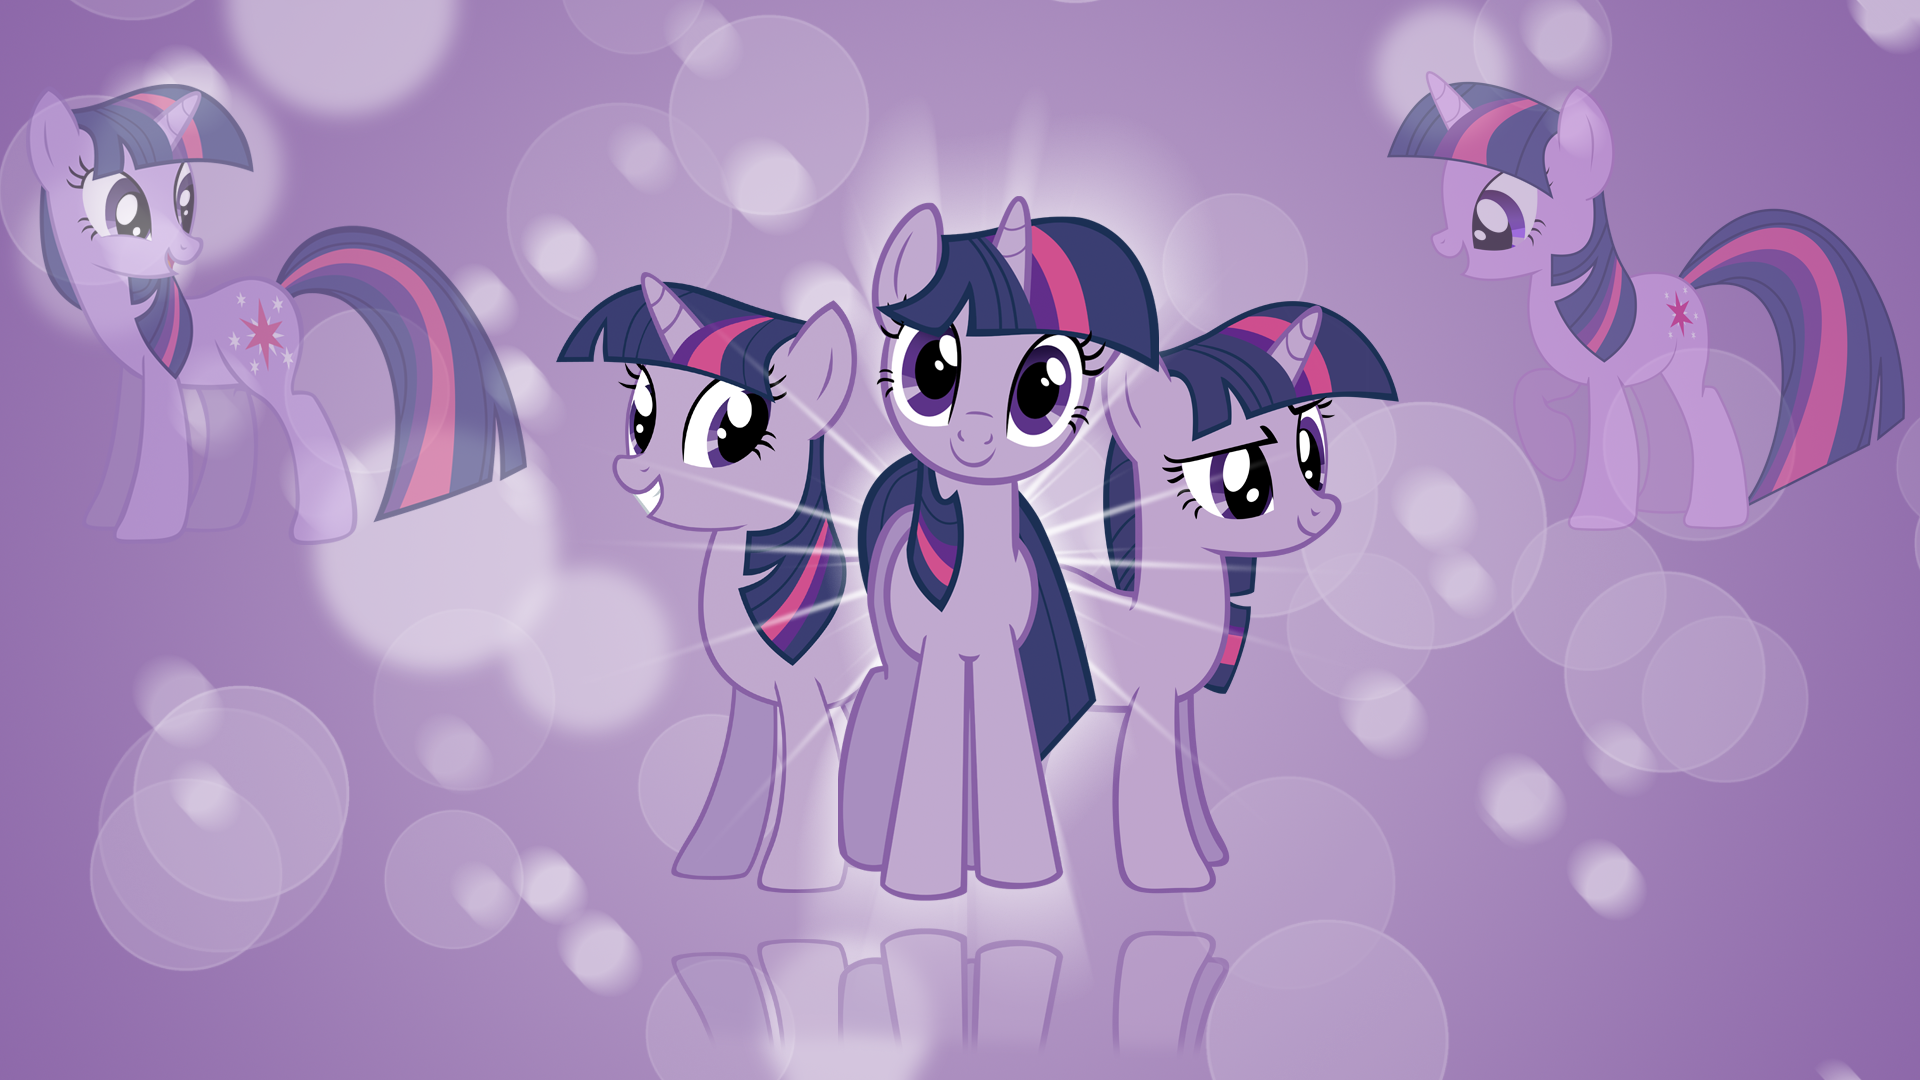 Twilight Sparkle 'Bubbles!' Wallpaper by aeroyTechyon-X, Bl1ghtmare, BlueDragonHans, HankOfficer, kitsuneymg and Peachspices